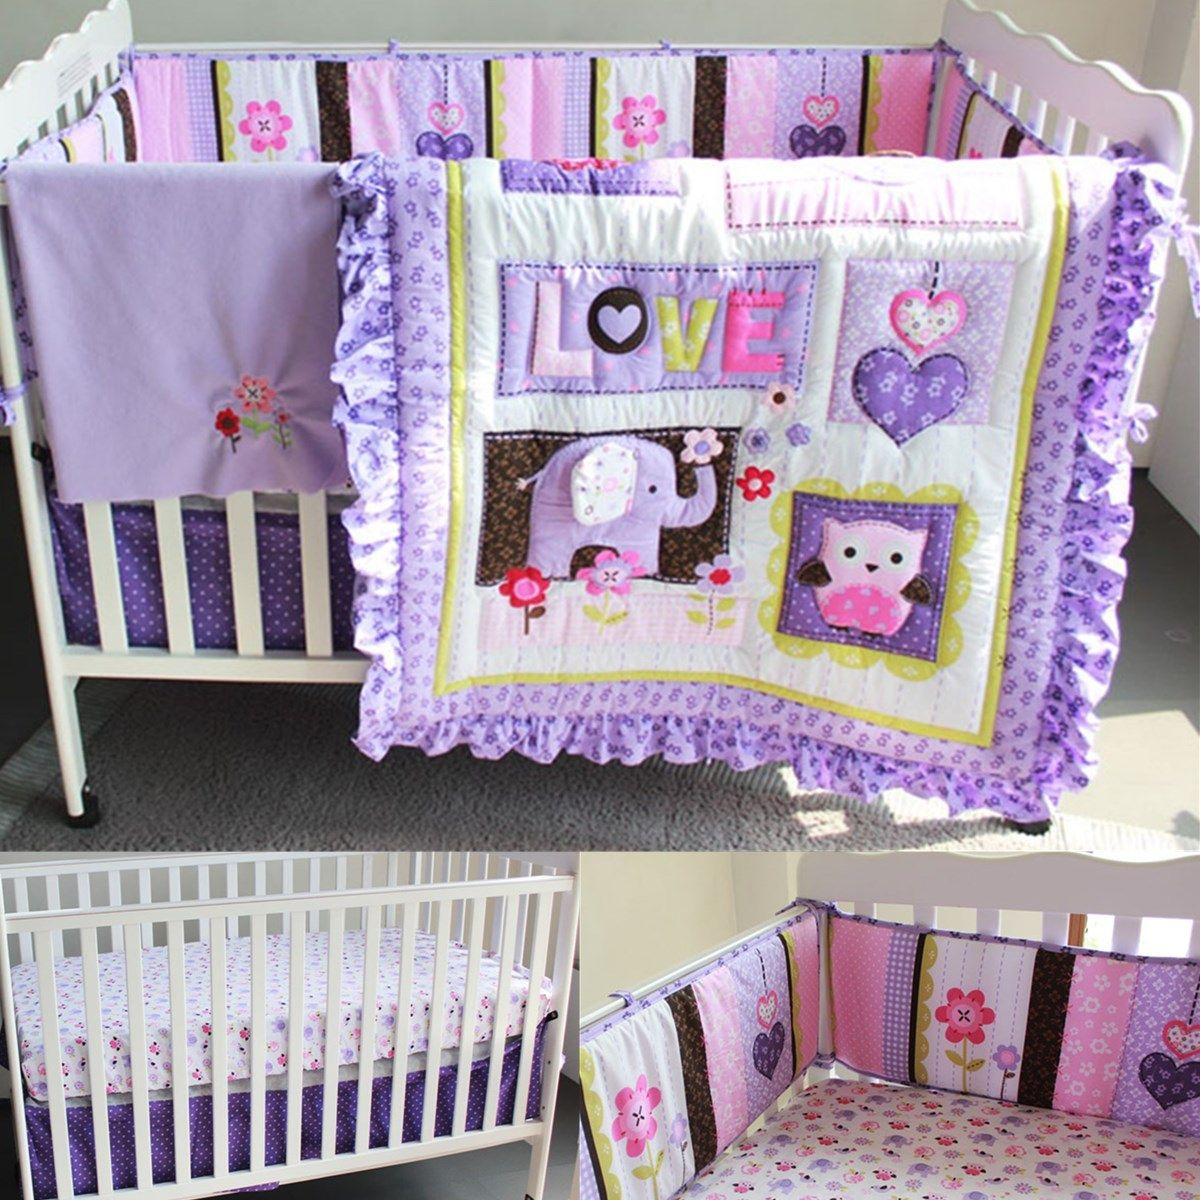 8 Pcs/set Baby Bedding Set Purple Elephant Crib Cot Quilt Bumper Sheet Dust Ruffle Cotton Polyester Bumper Pads Sheets8 Pcs/set Baby Bedding Set Purple Elephant Crib Cot Quilt Bumper Sheet Dust Ruffle Cotton Polyester Bumper Pads Sheets